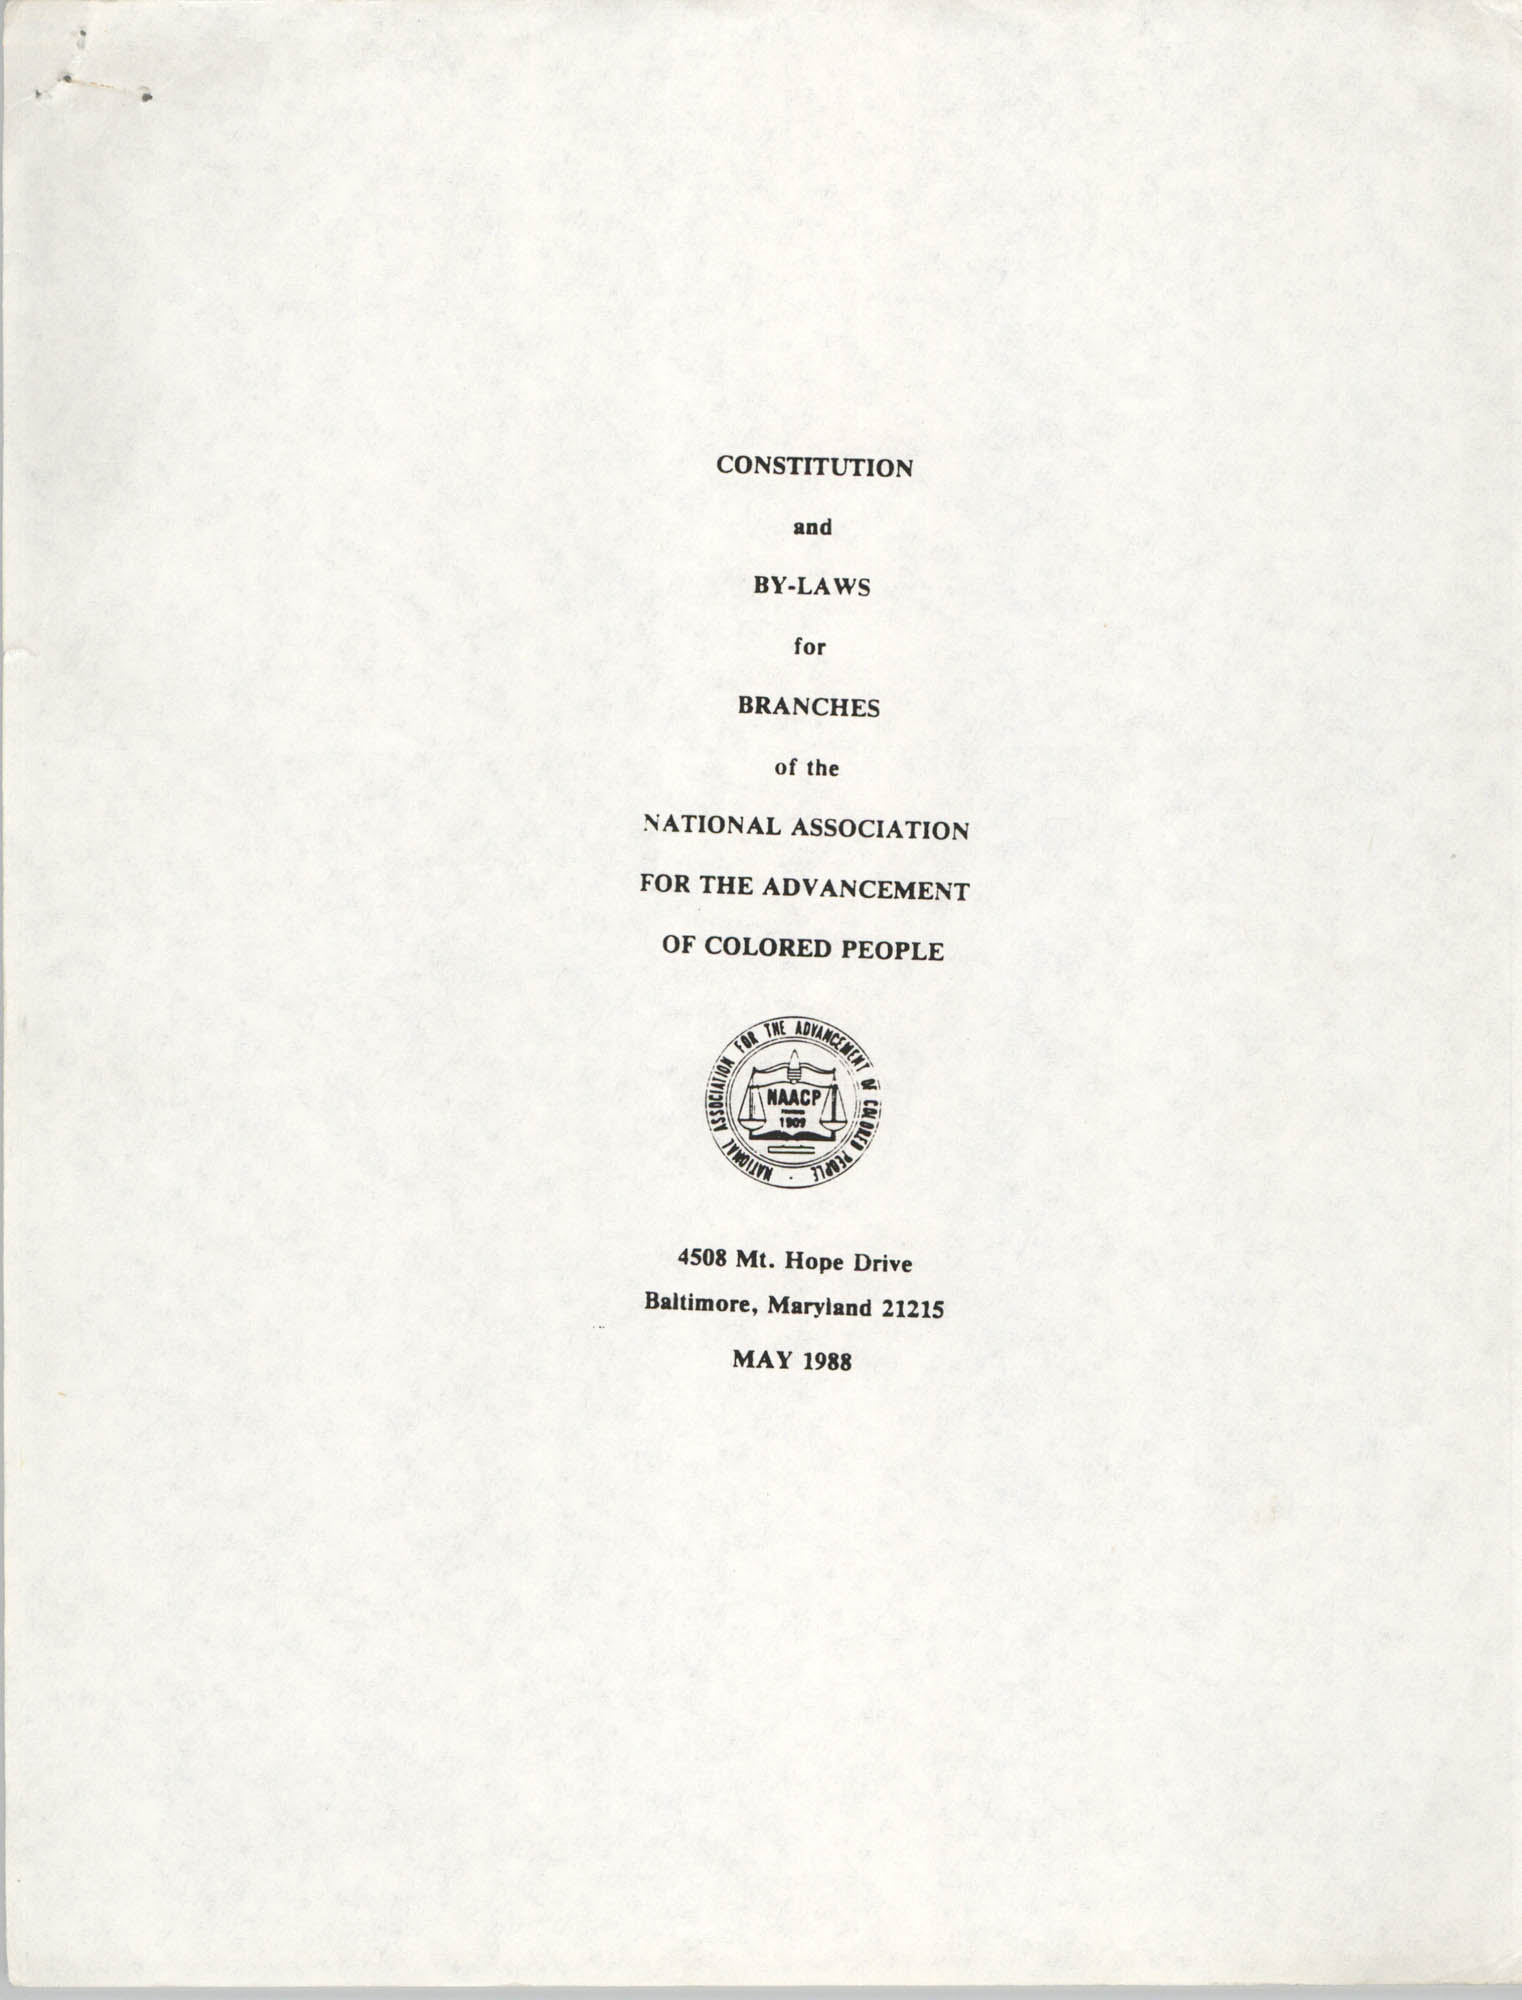 Constitution and By-Laws for Branches of the NAACP, May 1988, Cover